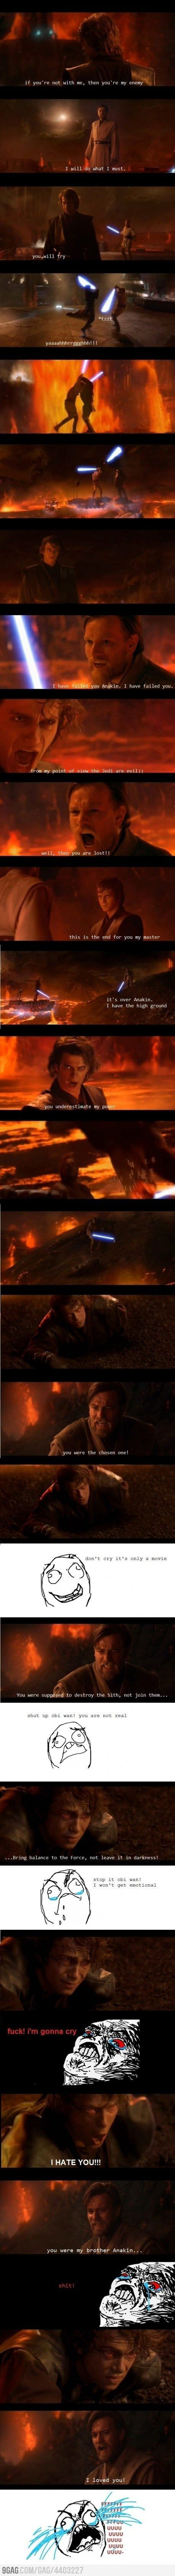 Pardon the language, but this is how I felt watching this! Why I cried in Star Wars... lol Anakin vs. Obi Wan